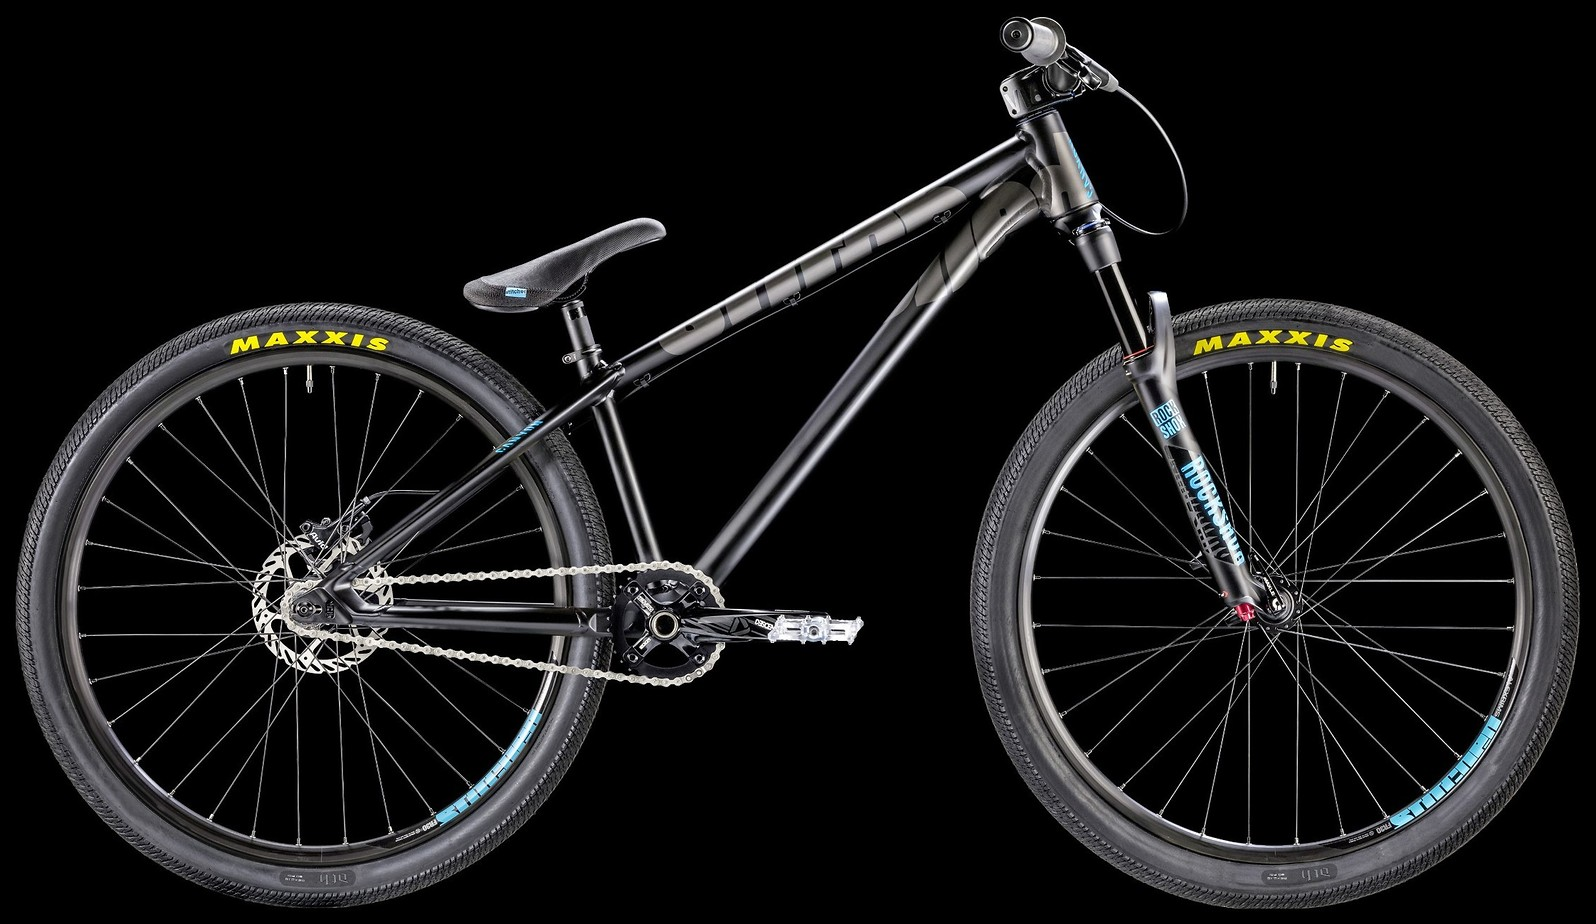 2017 Canyon Stitched 360 Degrees Bike - Reviews